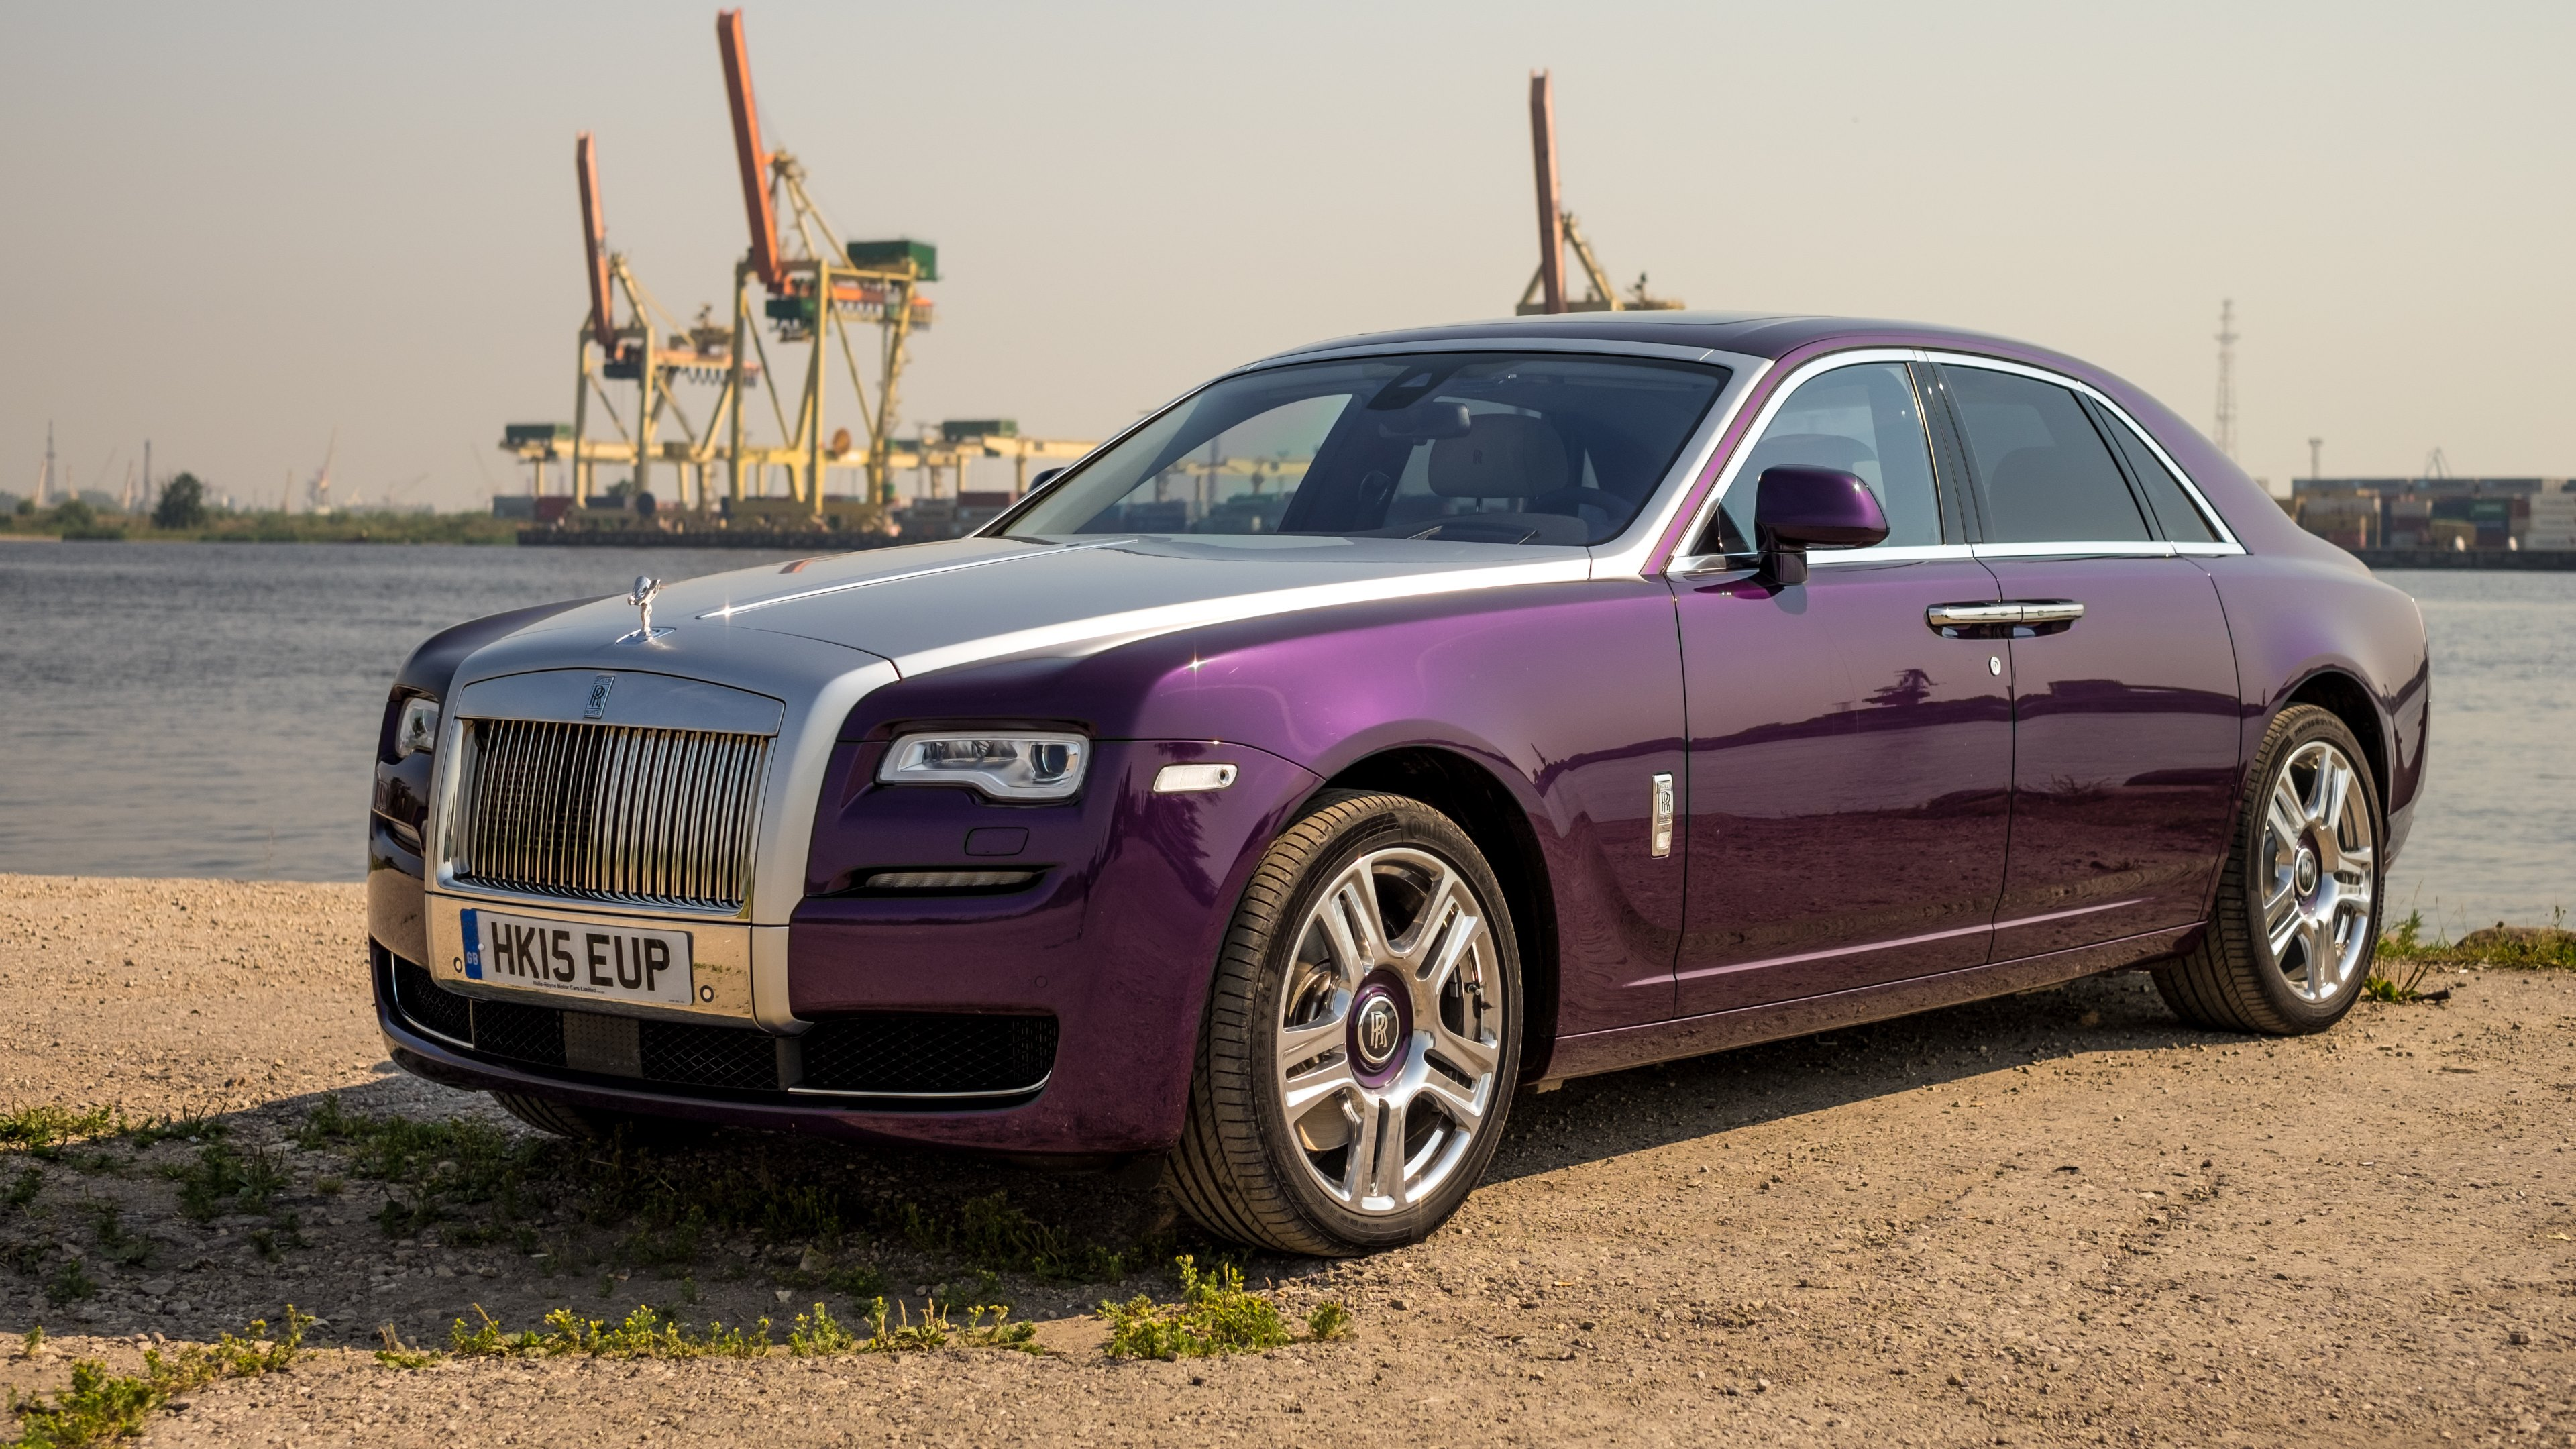 228 rolls royce hd wallpapers | background images - wallpaper abyss